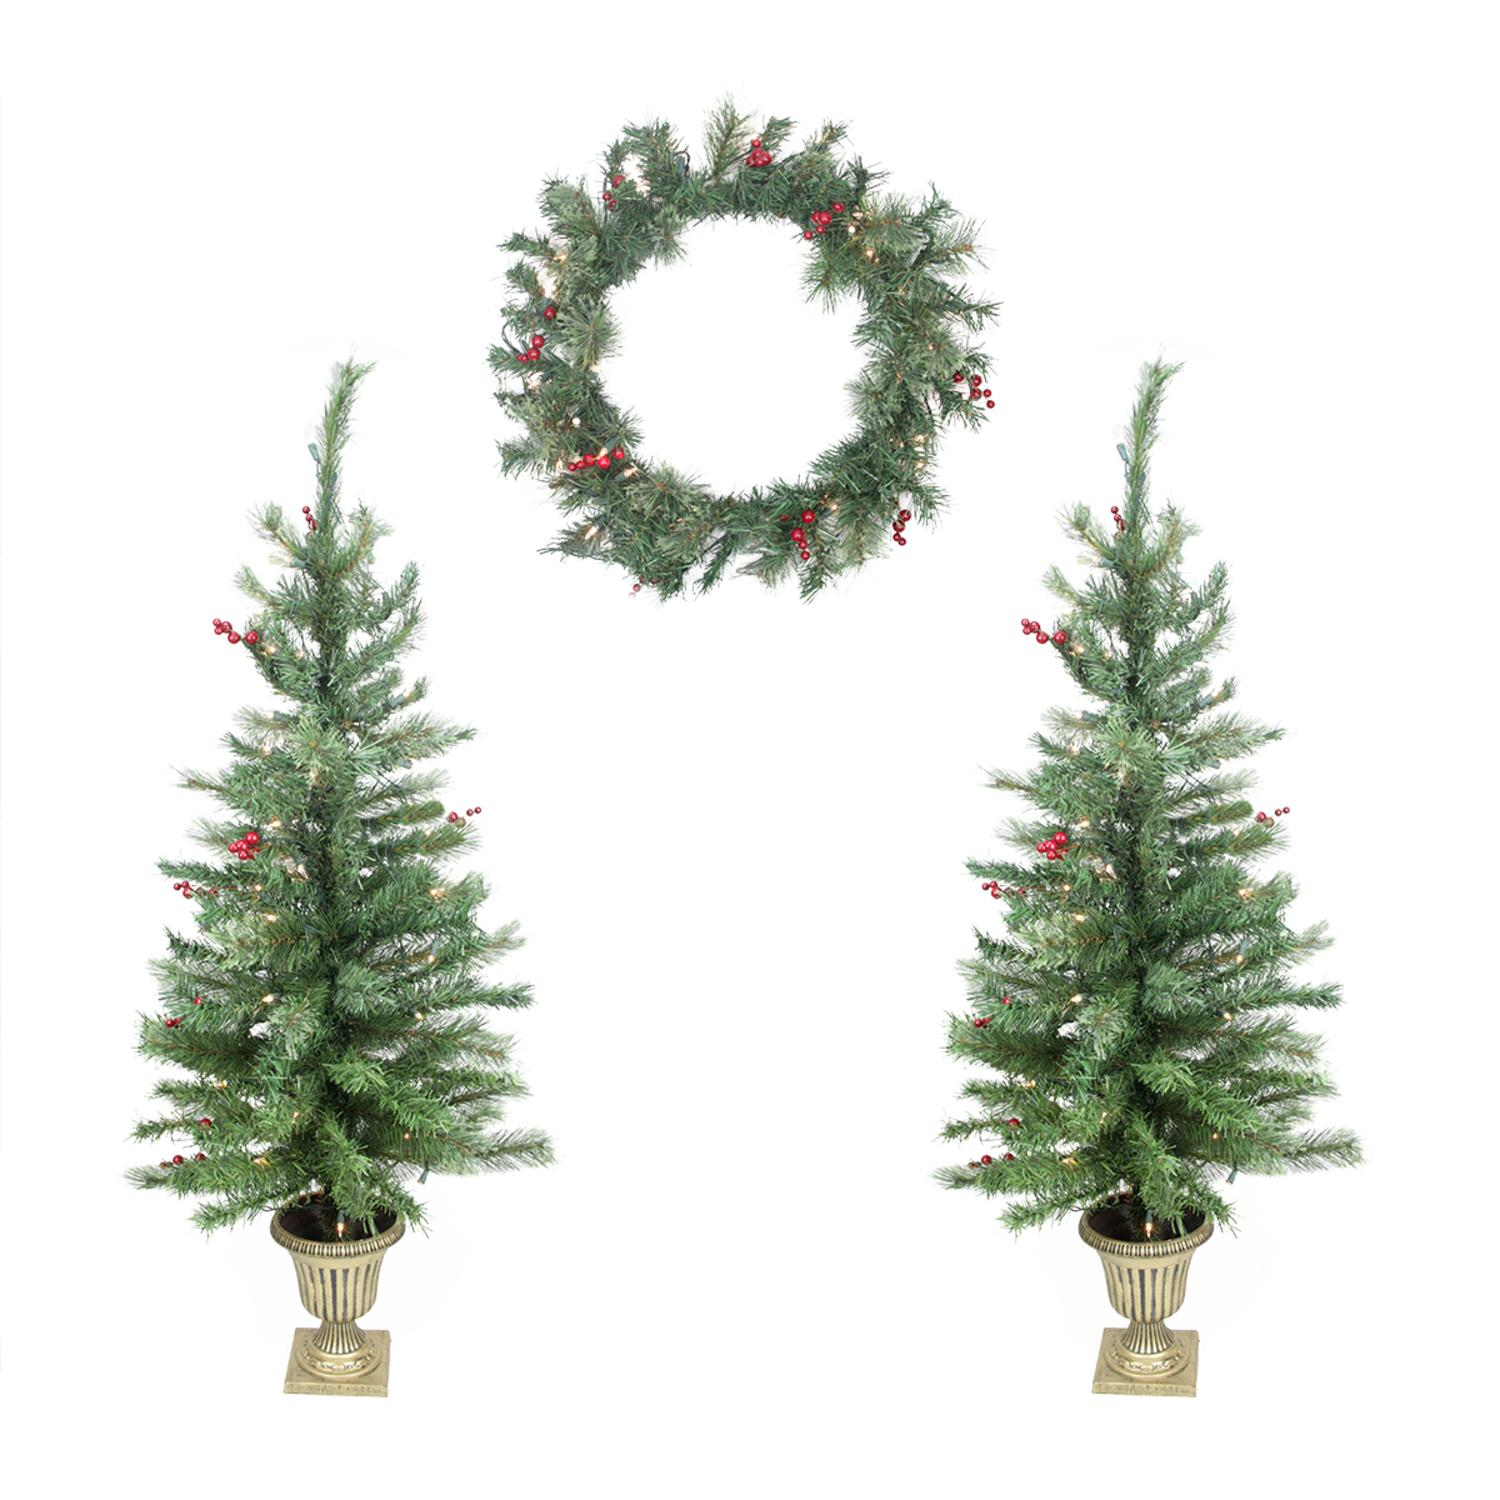 Set of 4 Red Berry Pine Artificial Christmas Trees and Wreath - Clear Lights